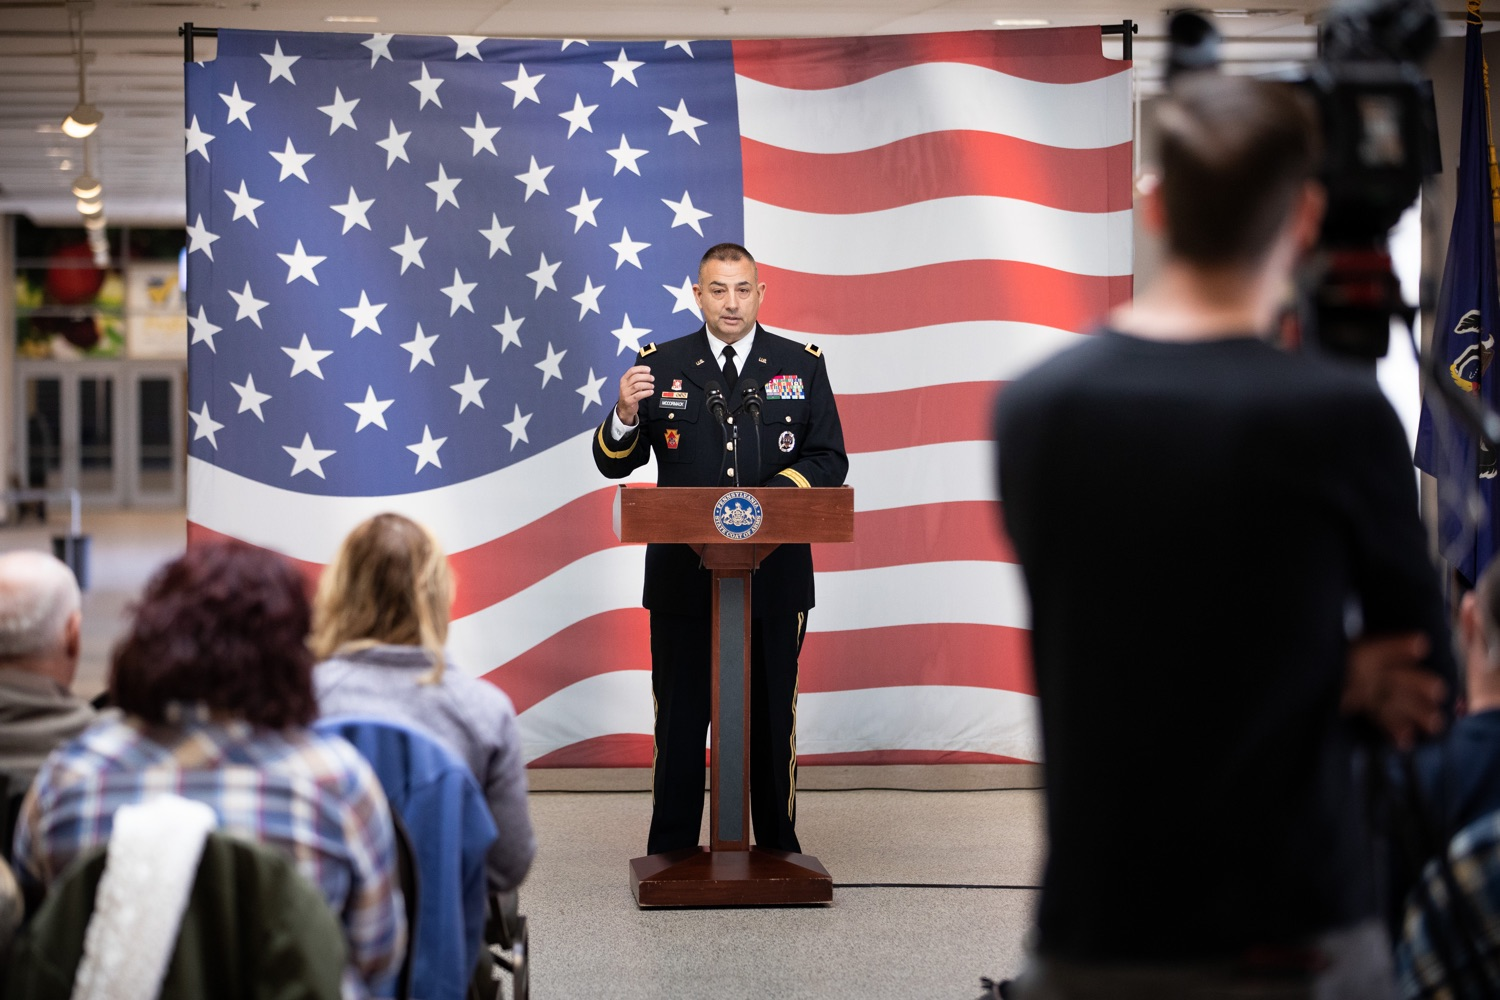 """<a href=""""https://filesource.wostreaming.net/commonwealthofpa/photo/17530_agric_homegrown_heroes_dz_022.jpg"""" target=""""_blank"""">⇣Download Photo<br></a>Veterans Affairs Brig. Gen. Mark McCormack speaks at the ceremony.  Agriculture Secretary Russell Redding and Department of Military and Veterans Affairs Brig. Gen. Mark McCormack honored members of the PA Preferred Homegrown by Heroes program for their service to our nation and to Pennsylvania, through their military service and work in agriculture. The two agencies celebrated Pennsylvanias investments in farmer-veterans in a ceremony at the Pennsylvania Farm Show Complex and Expo Center. Harrisburg, PA - Friday November, 8 2019."""